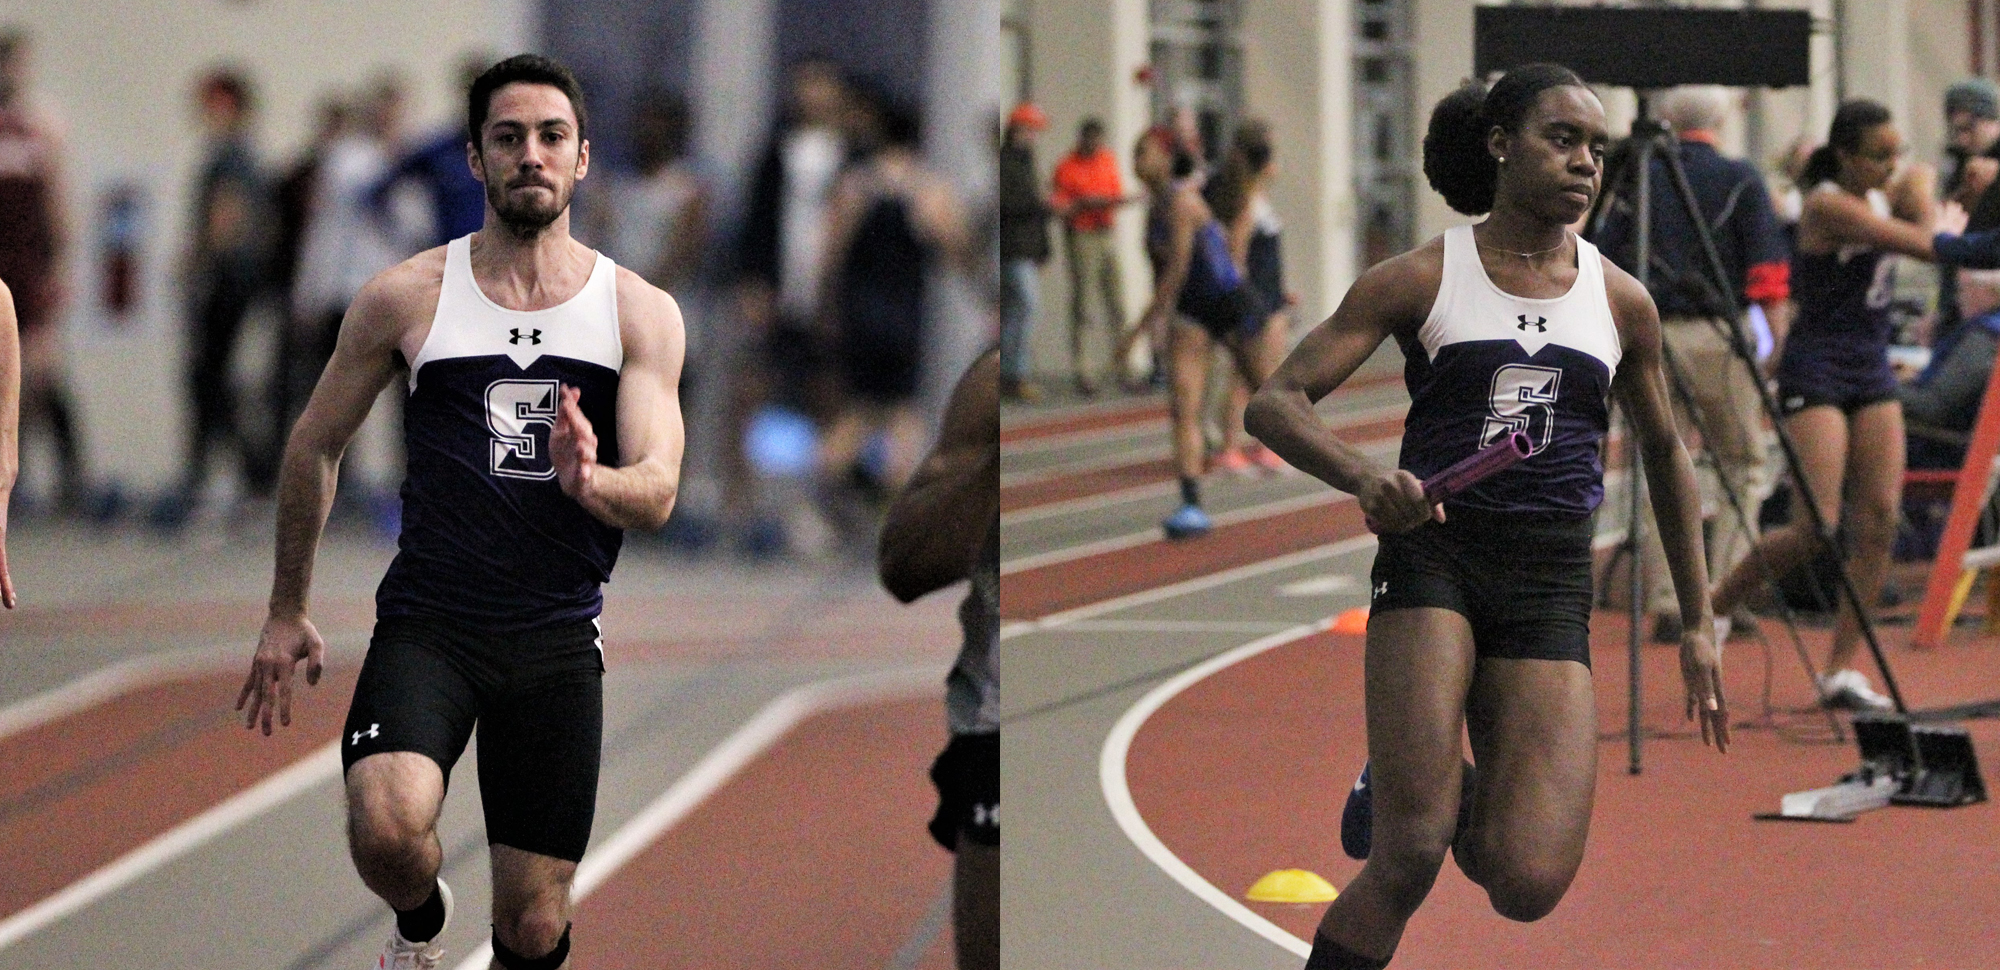 Mark Merli and AnnMarie Onwuka enter Saturday's Landmark Conference Indoor Championships ranked in the top-five in their respective events.